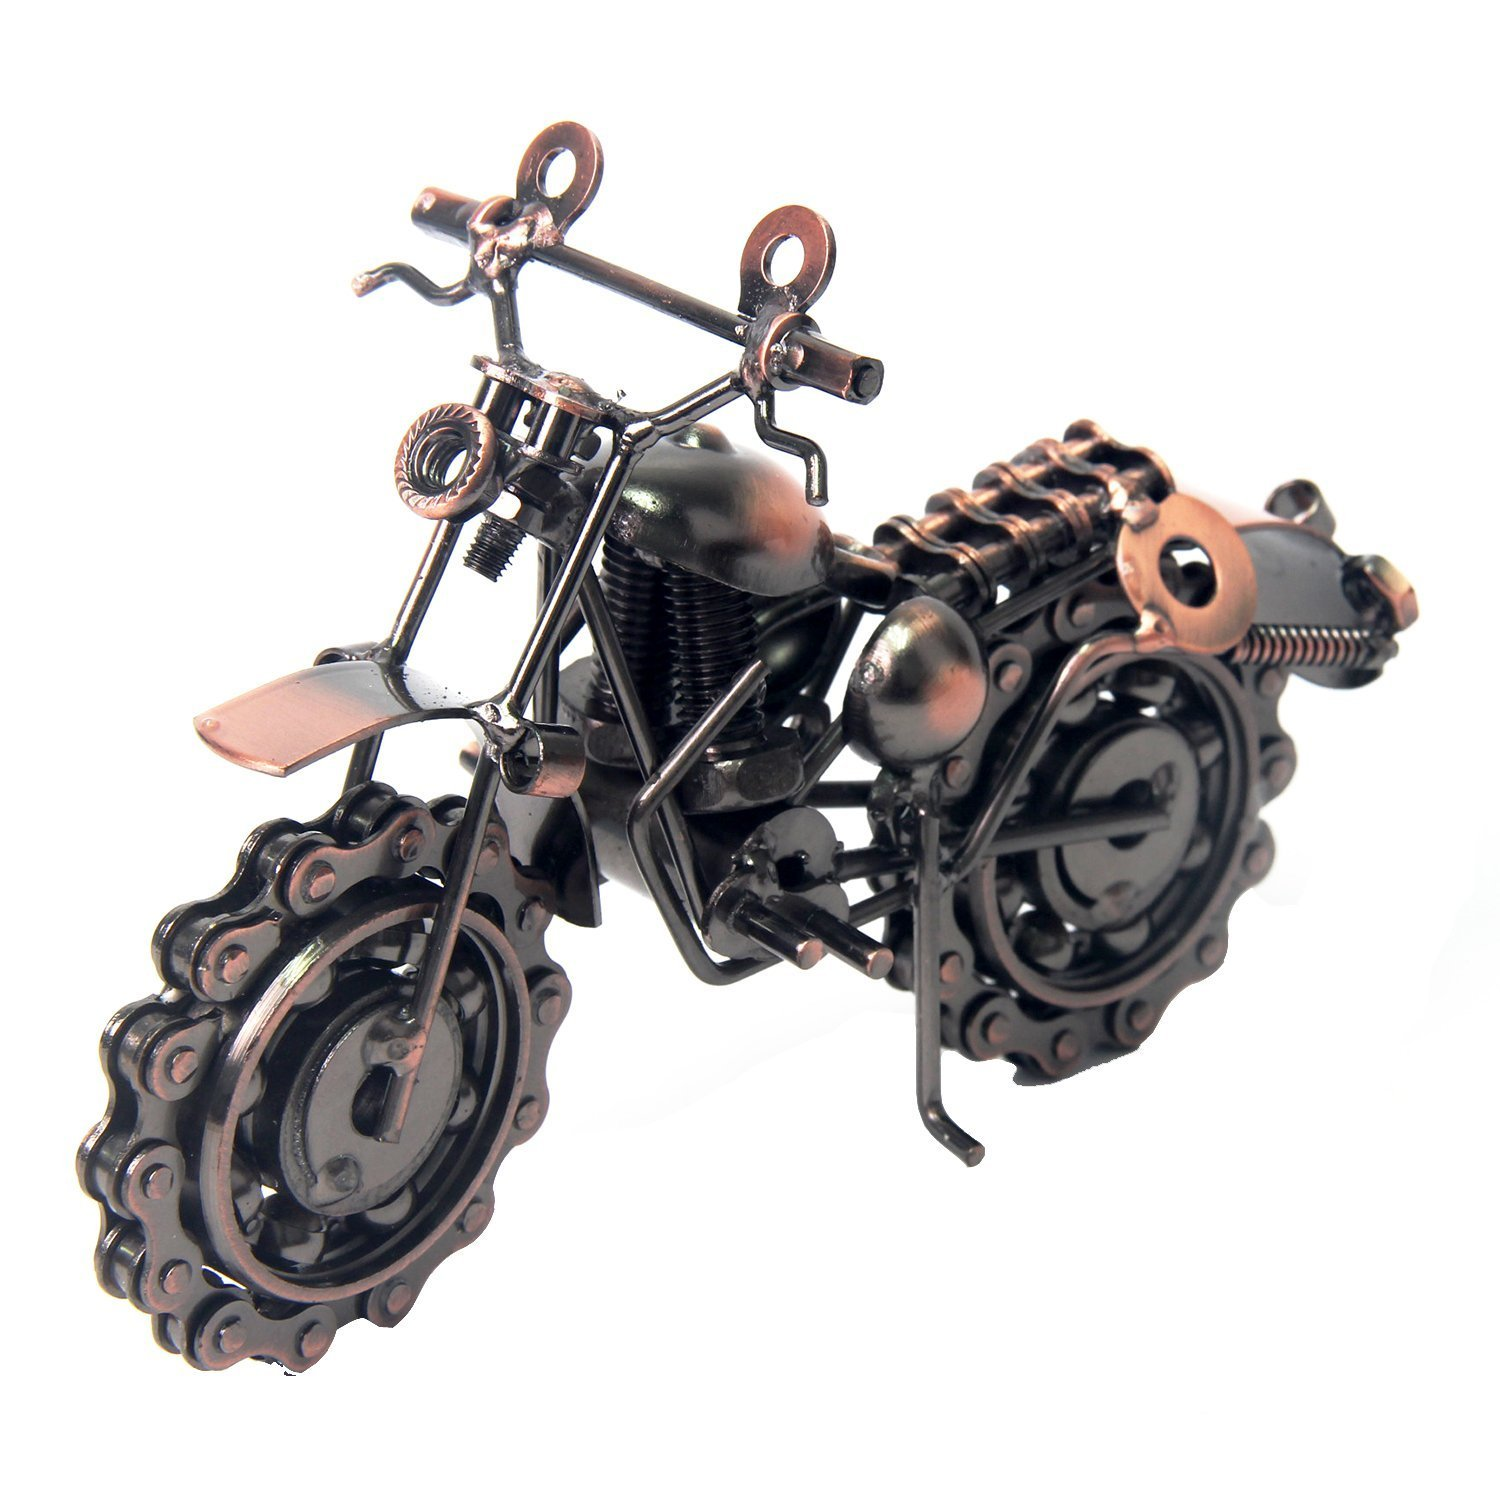 lanbing Classic Handmade Wrought Iron Motorcycle Model Collectible Art Sculpture Motorbike For Home Decor Creative Desk Table Decoration Ornaments Toys Gifts (A21)